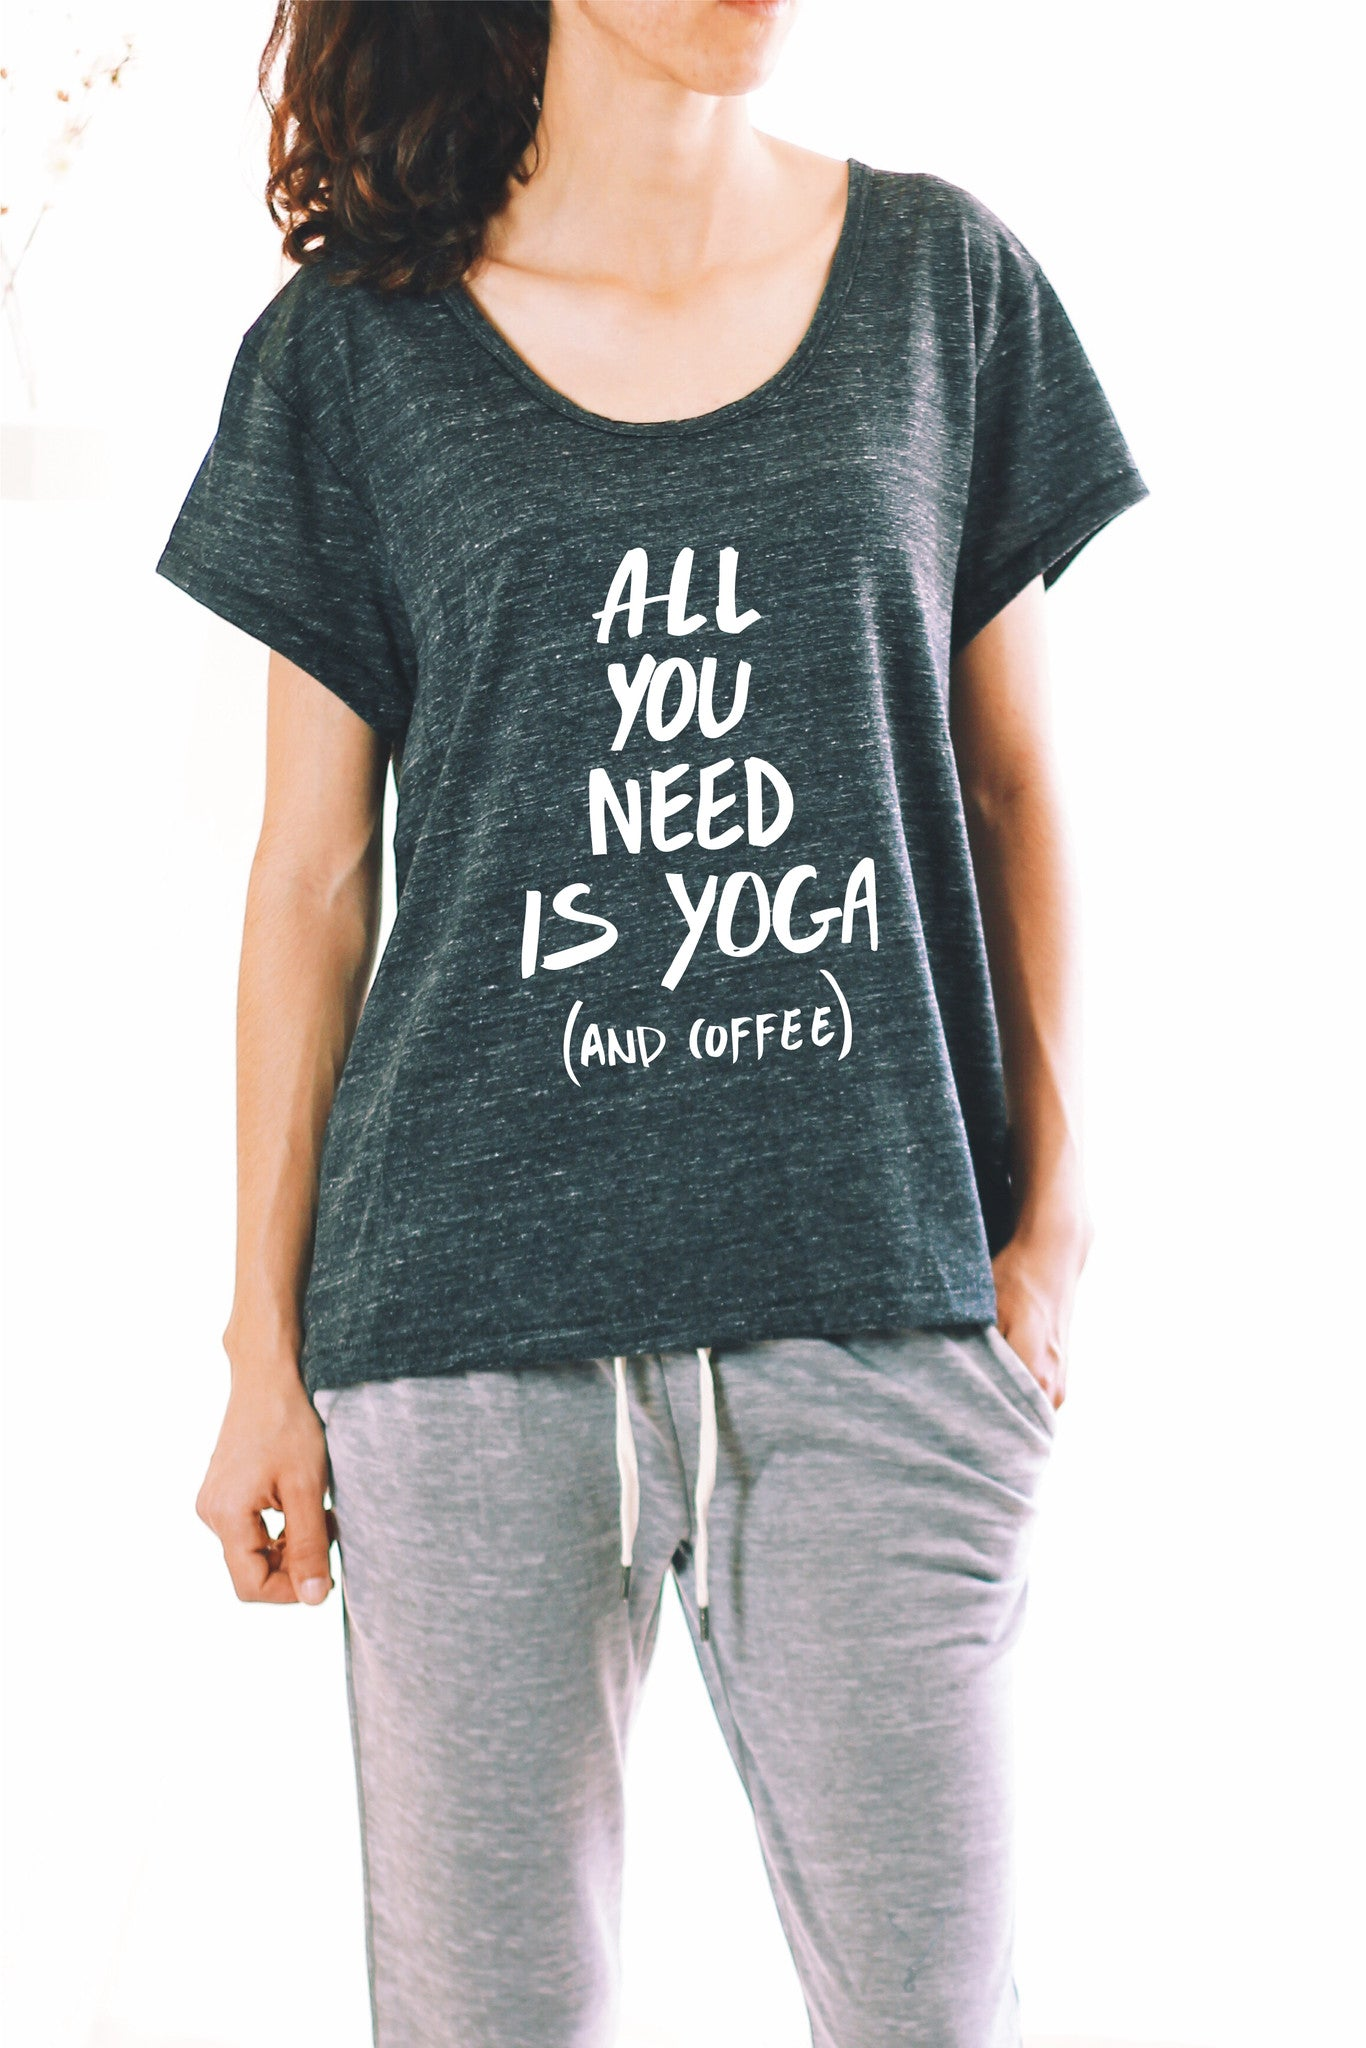 9f736644a9994 ALL YOU NEED IS YOGA AND COFFEE - FUNNY YOGA SHIRT ...